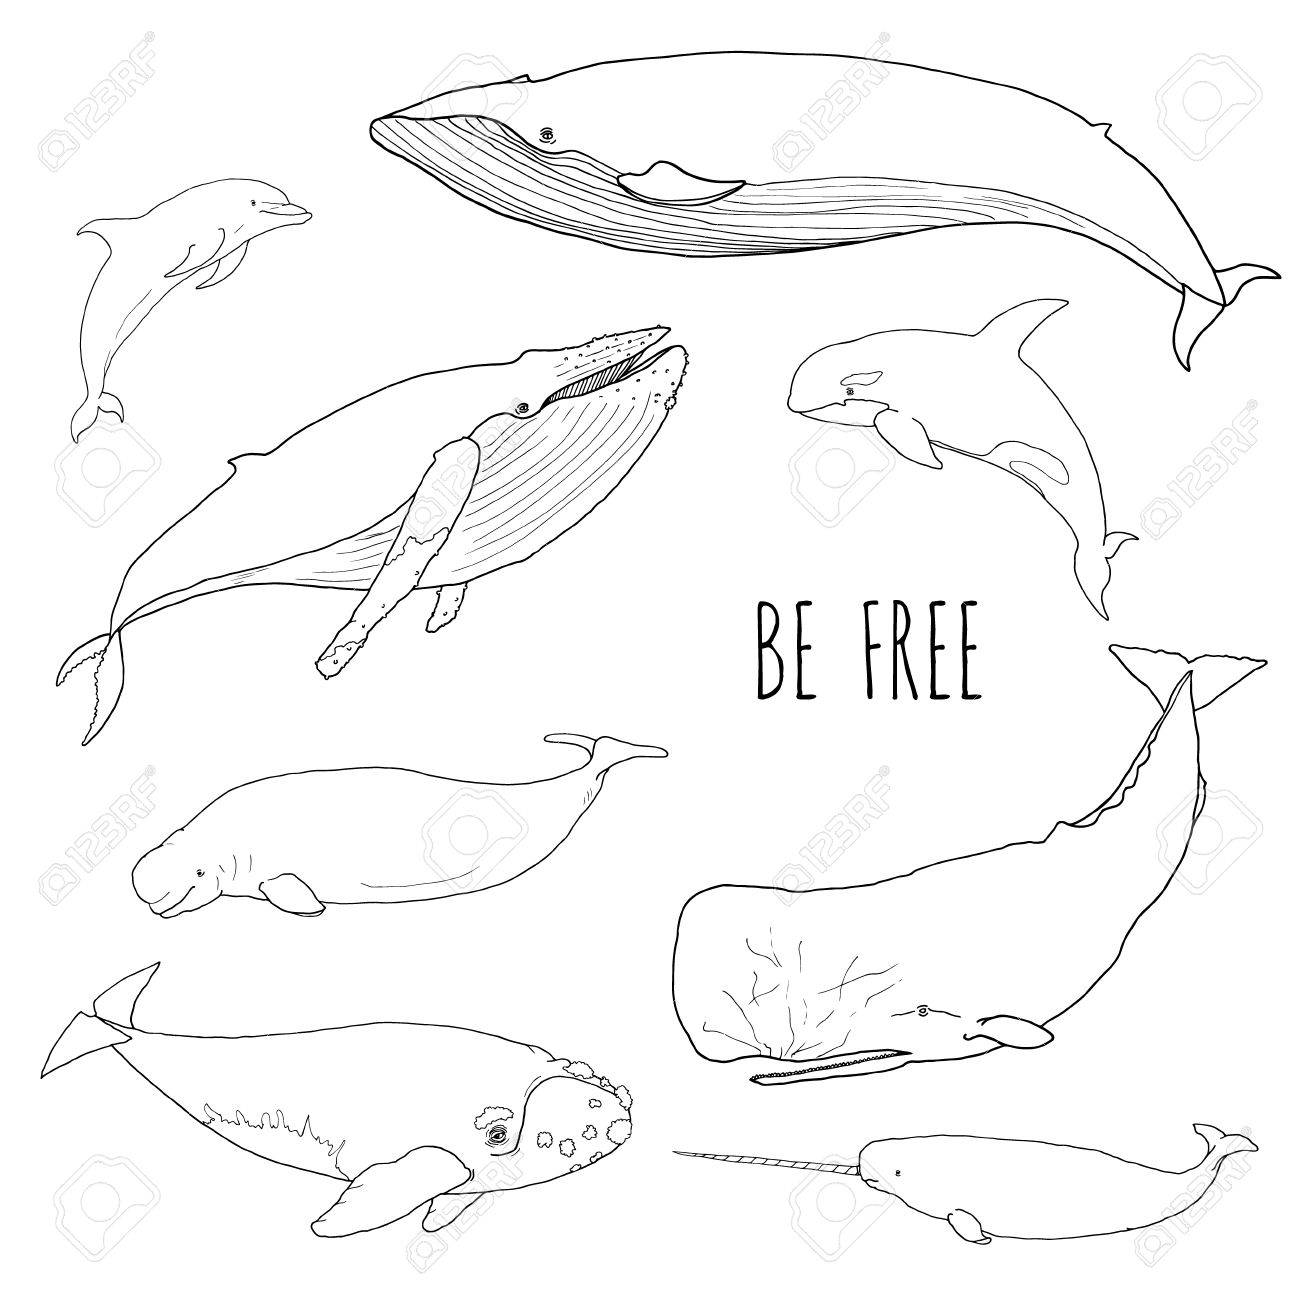 Jeu De Differentes Baleines Vector Illustration Des Mammiferes